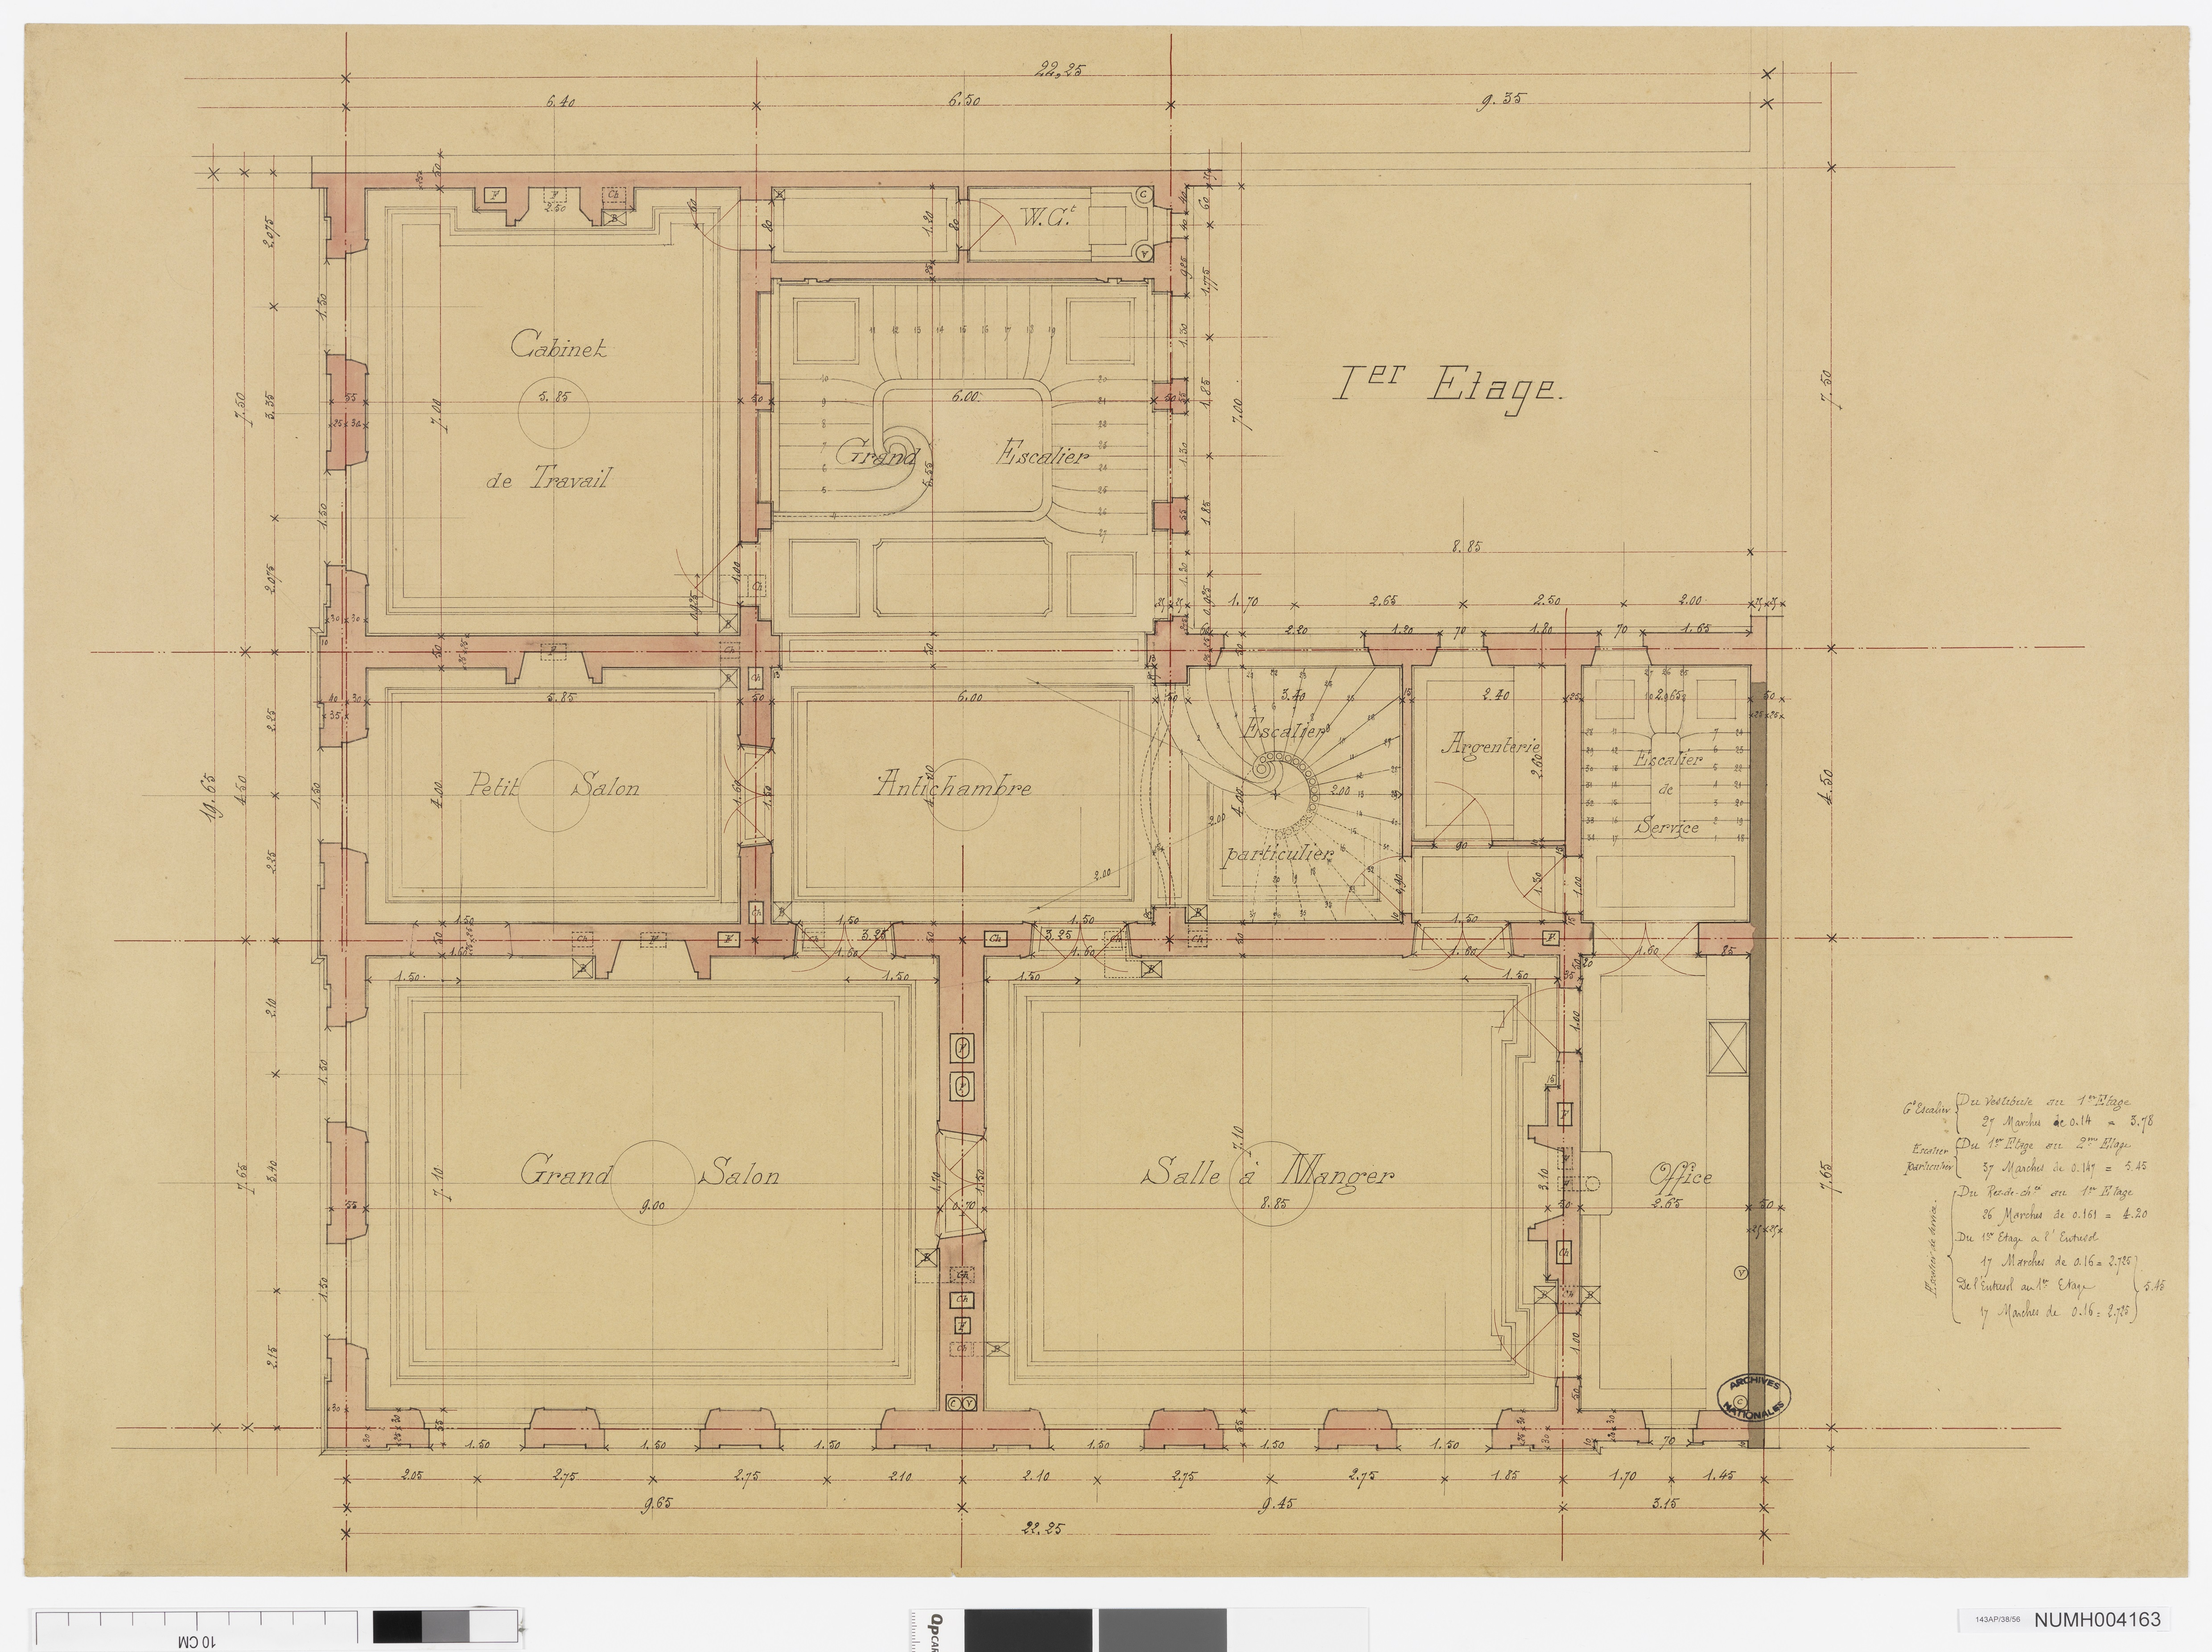 Hôtel de Vogüé : plan du 1er étage, 1882-1883.Document conservé aux Archives nationale. Cliché Atelier photographique des Archives nationales, 143 AP 38/ 56.